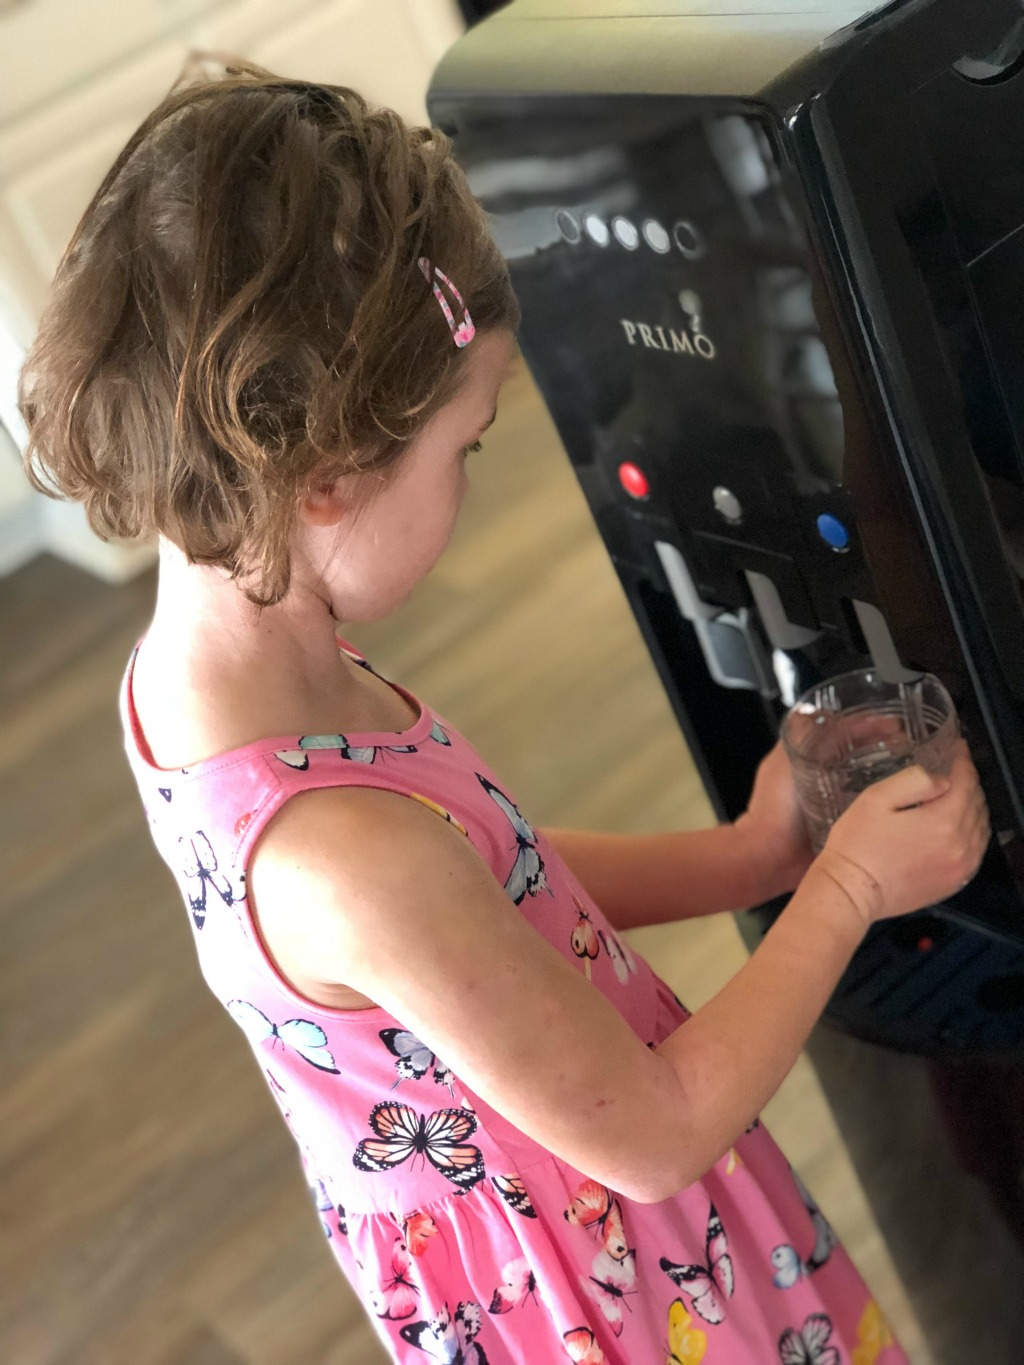 little girl filling up glass of water with water dispenser